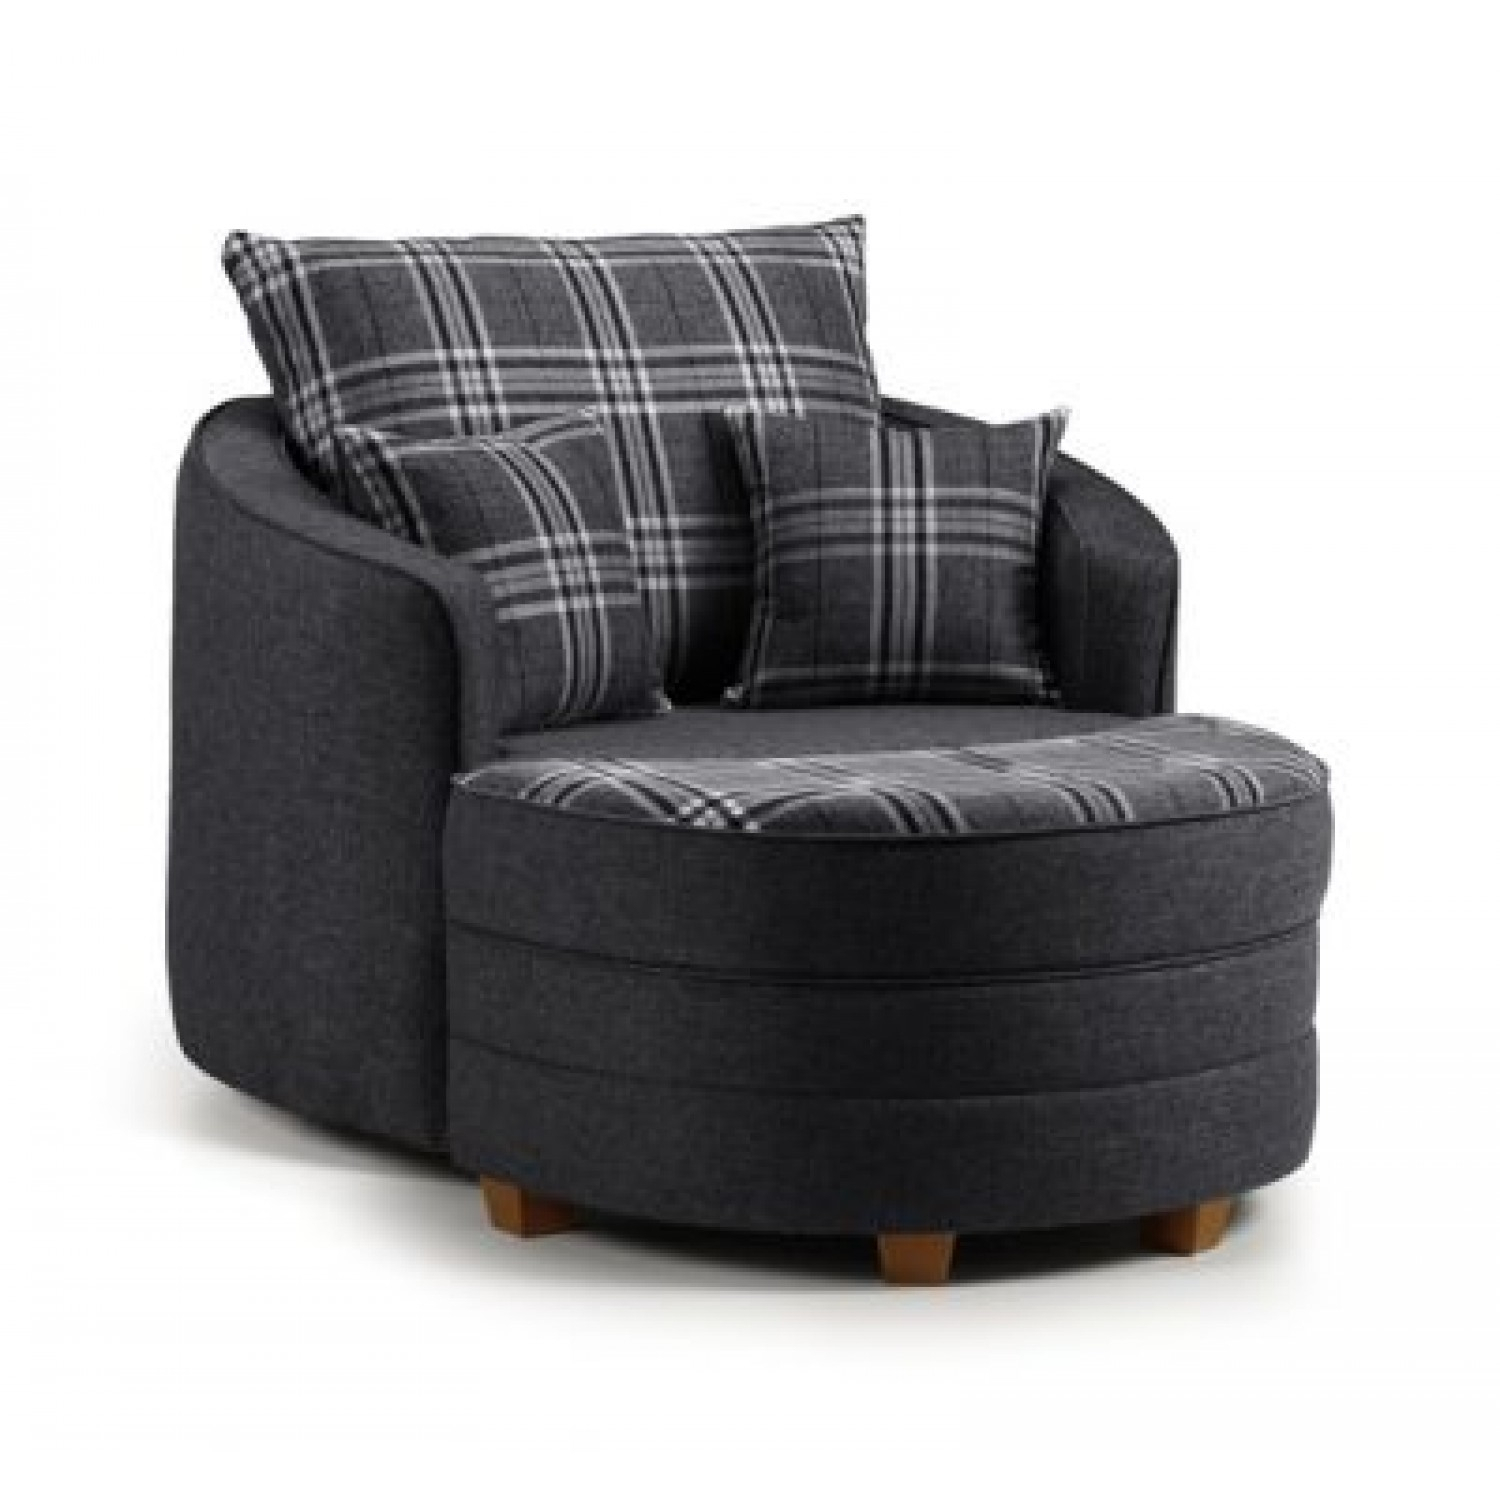 Note Swivel Cuddle Chair Charcoal Grey & Tartan With Half Moon Throughout Charcoal Swivel Chairs (Photo 6 of 25)